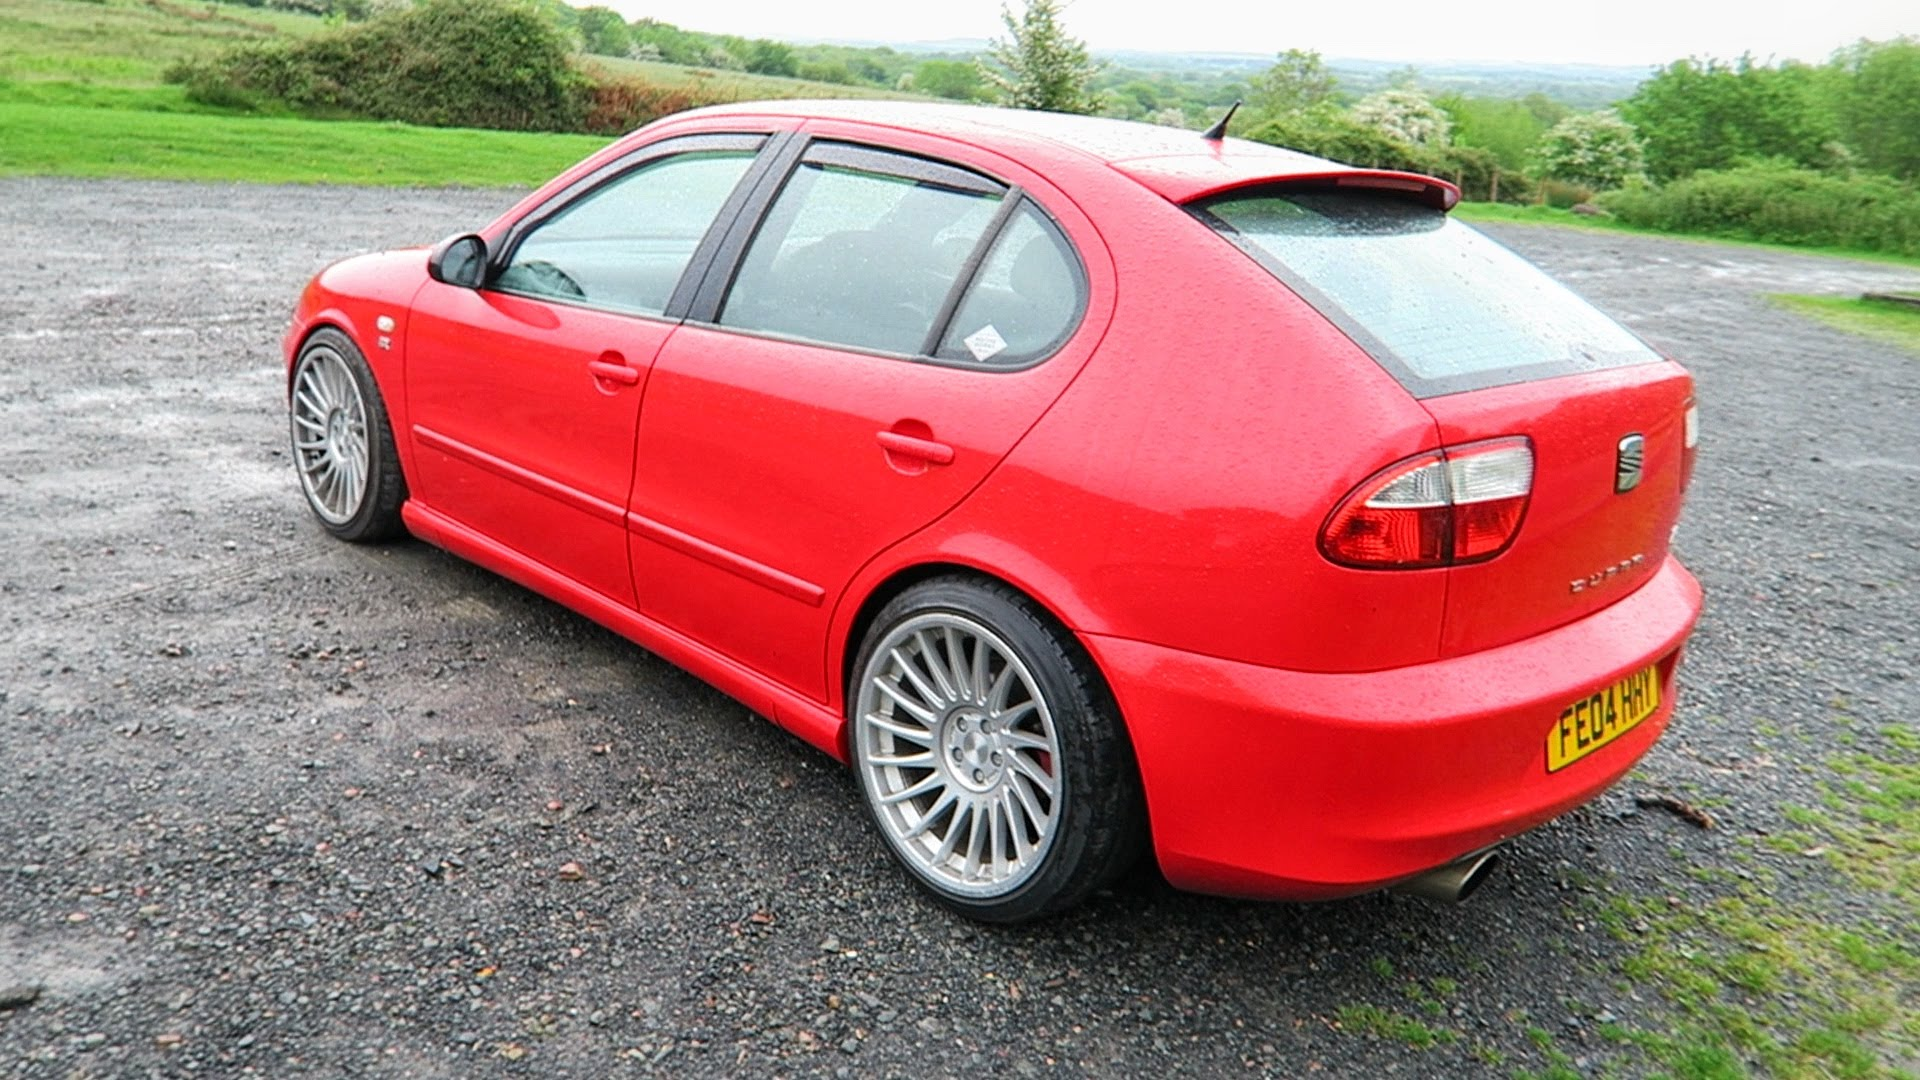 THE CUPRA IS BACK!